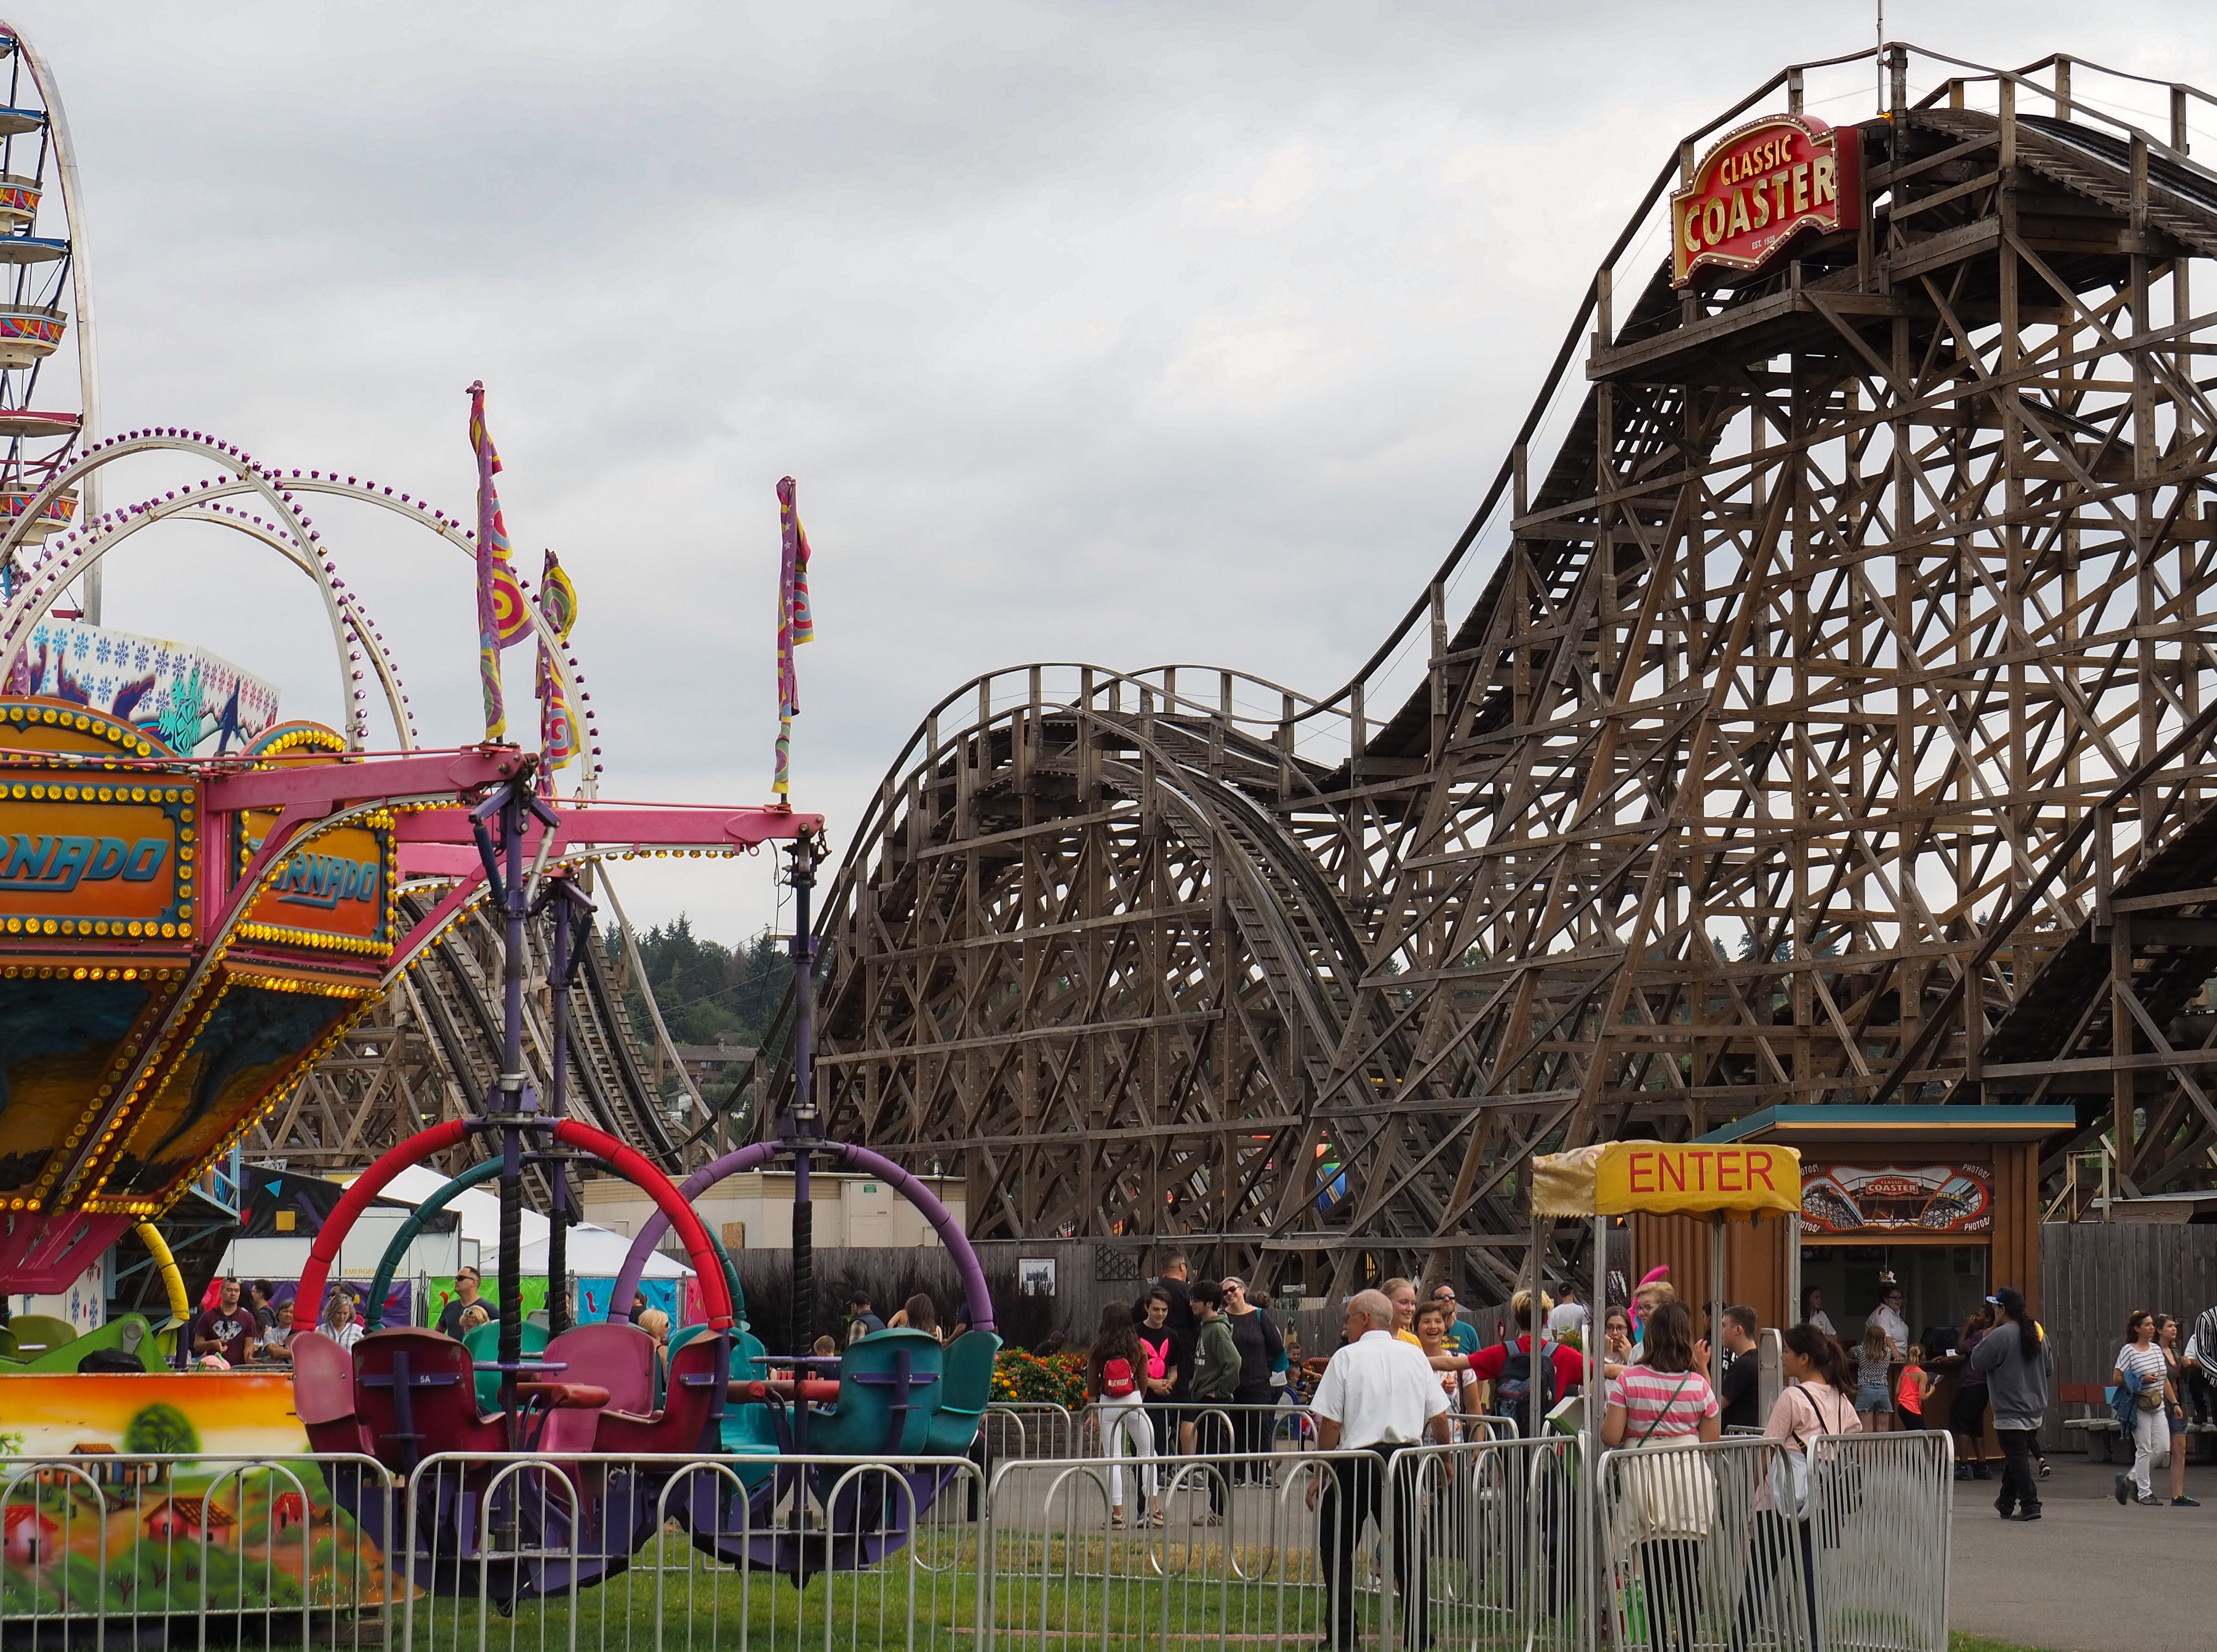 A roller coaster on a cloudy day at the Washington State Fair in Puyallup.